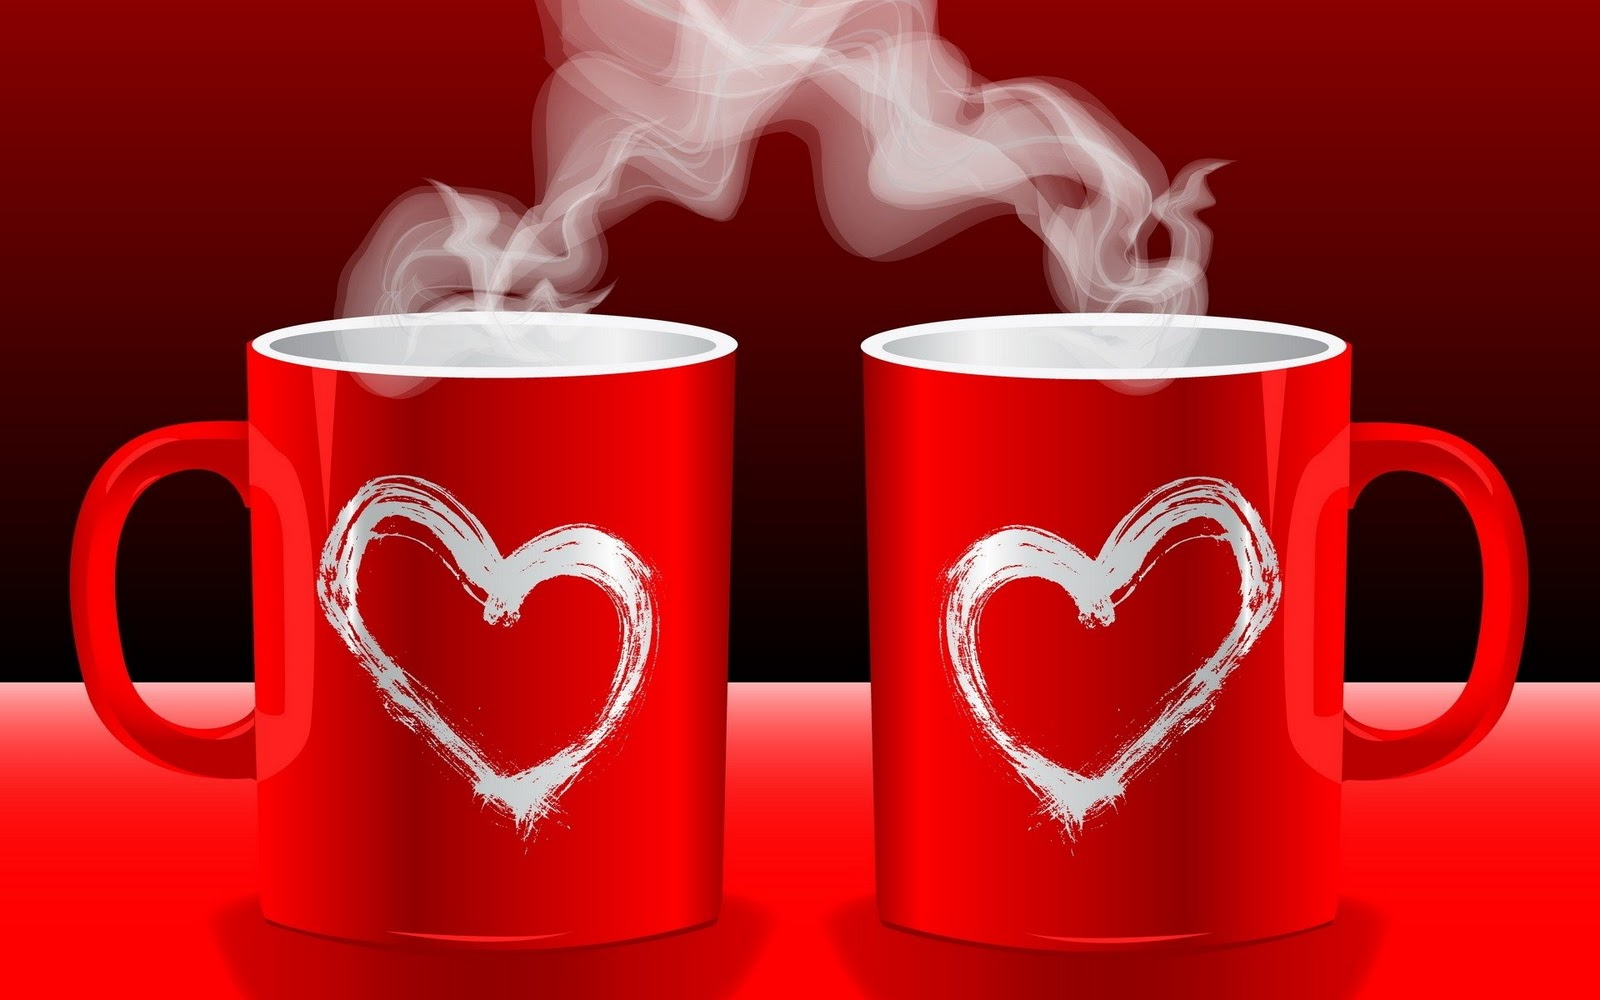 Good Morning Love Hd Wallpaper 1080p : wallpaper: April 2009